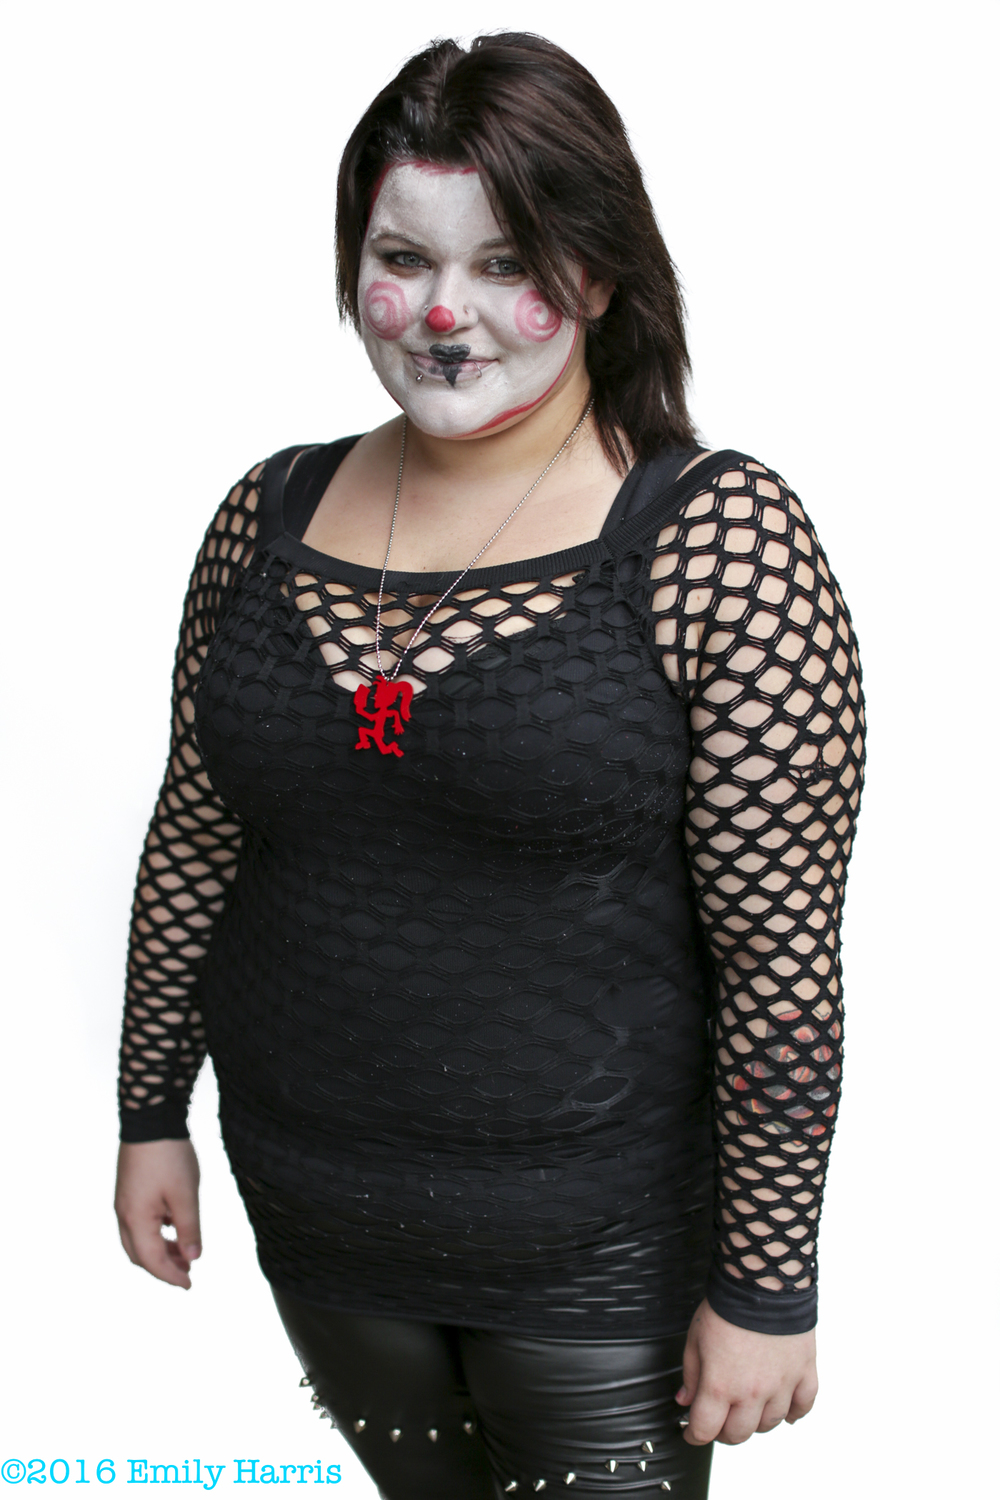 Juggalos_Portraits_Untitled-9.jpg